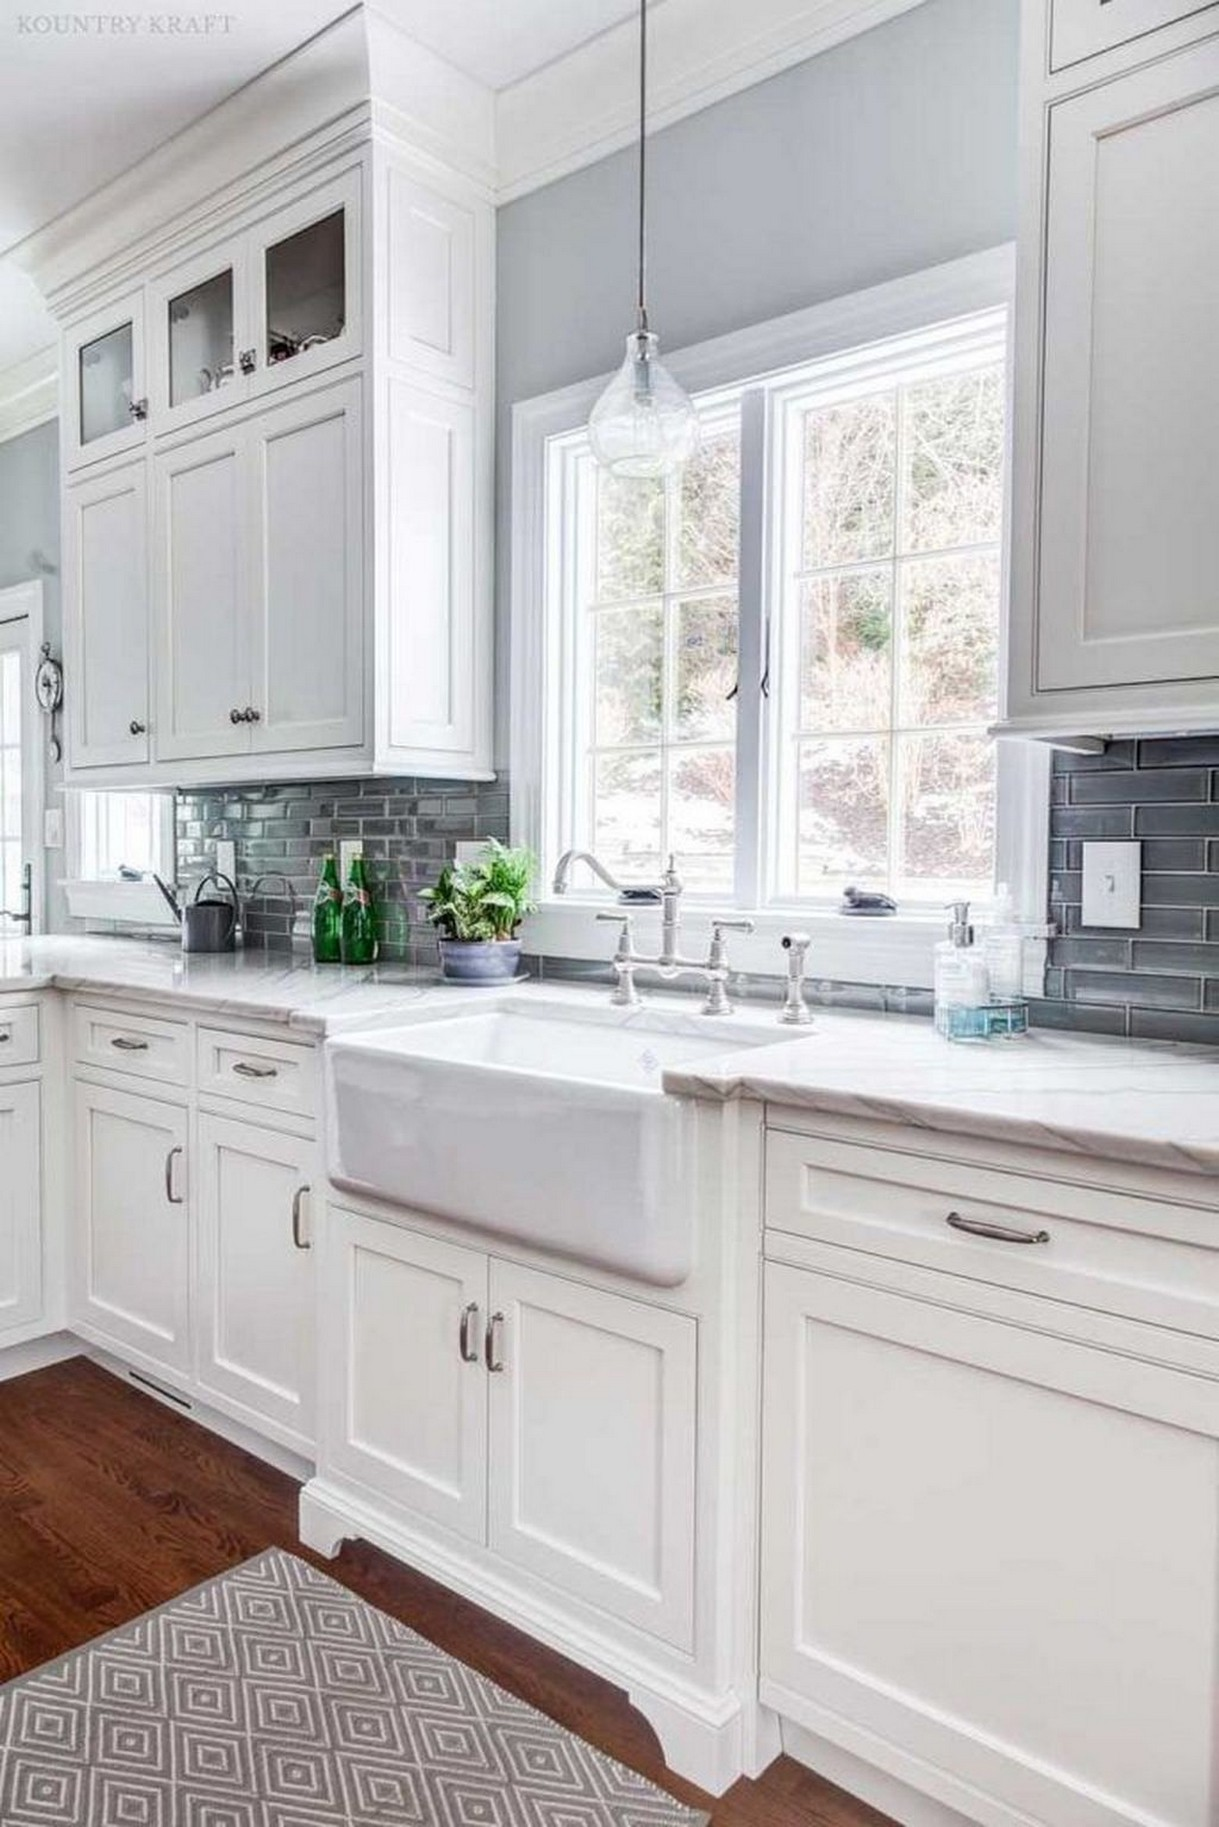 74 Things A Farmhouse Kitchen Sink Can Do For You Home Decor 33